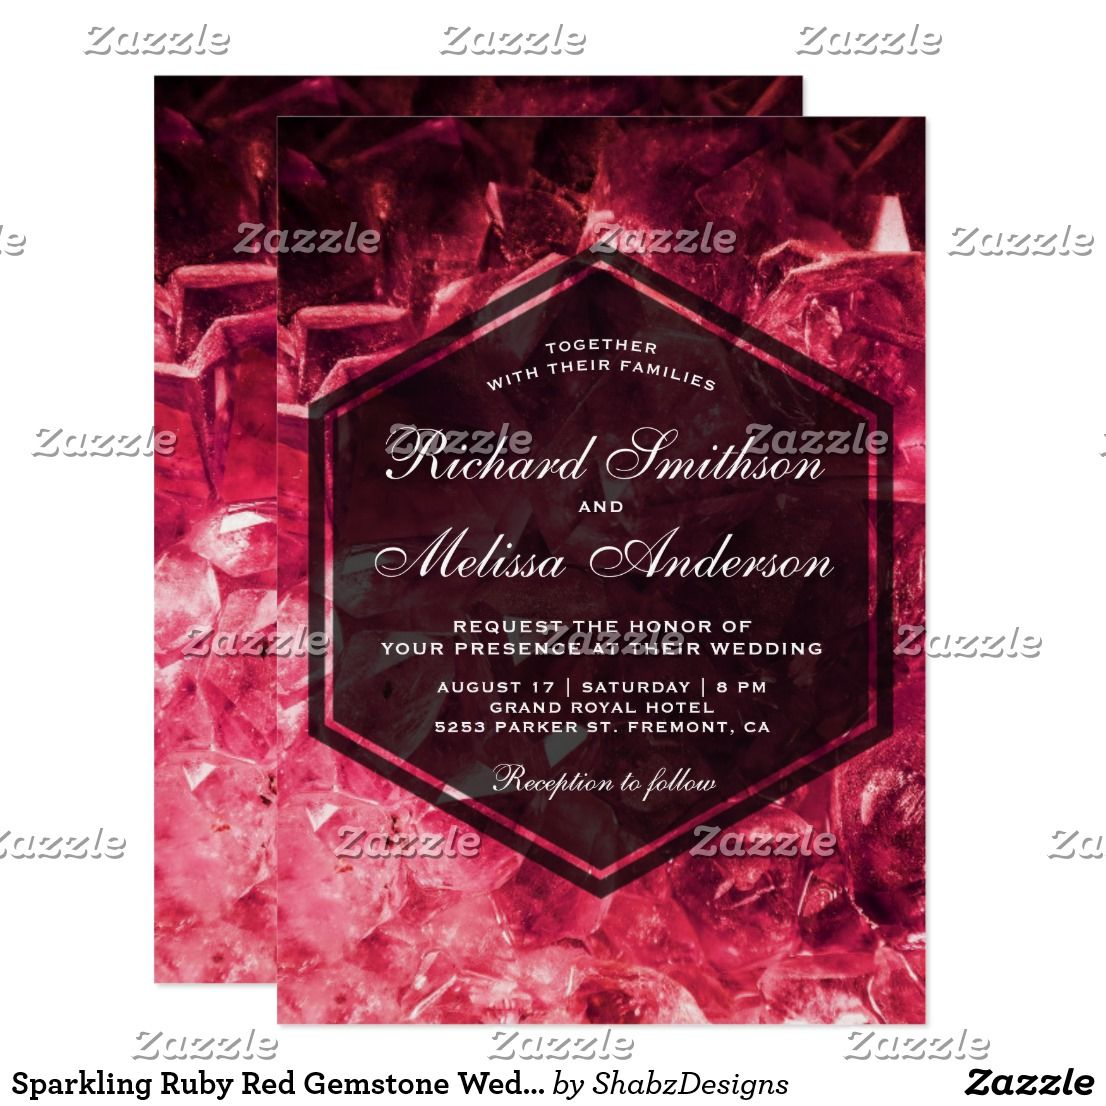 Sparkling Ruby Red Gemstone Wedding Invitation | Wedding & Bridal ...